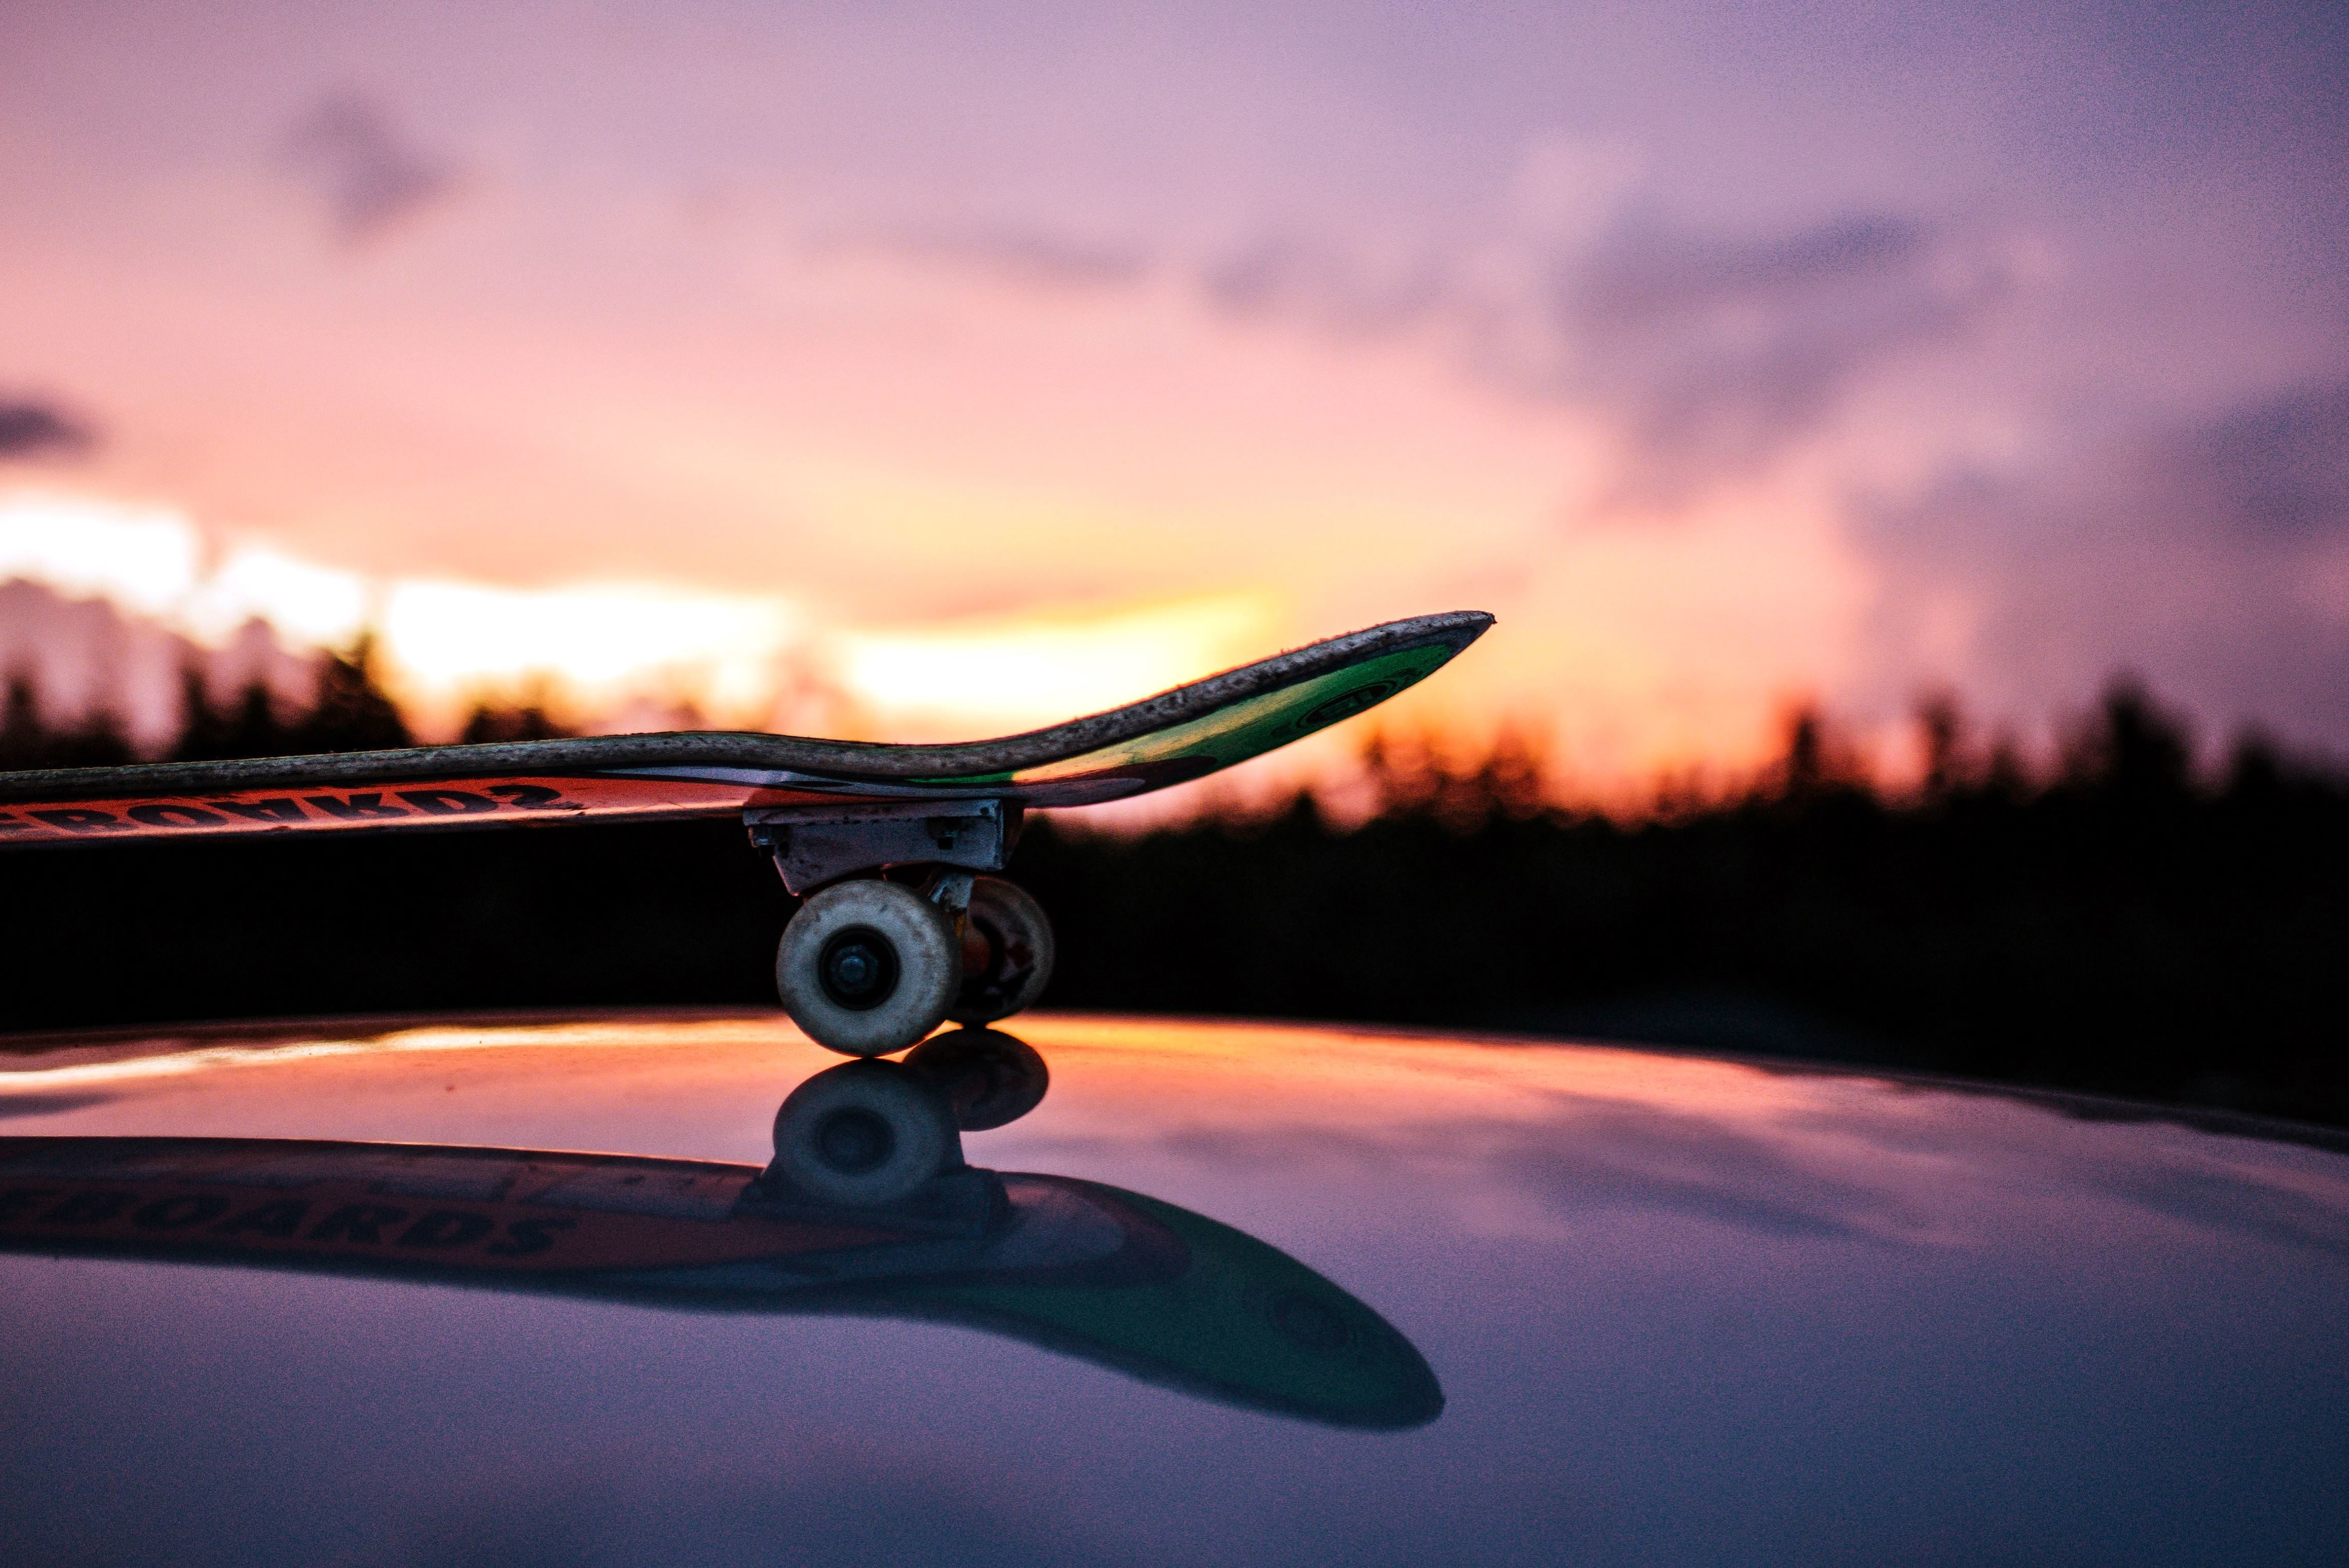 free picture reflection skateboard sky wheels clouds